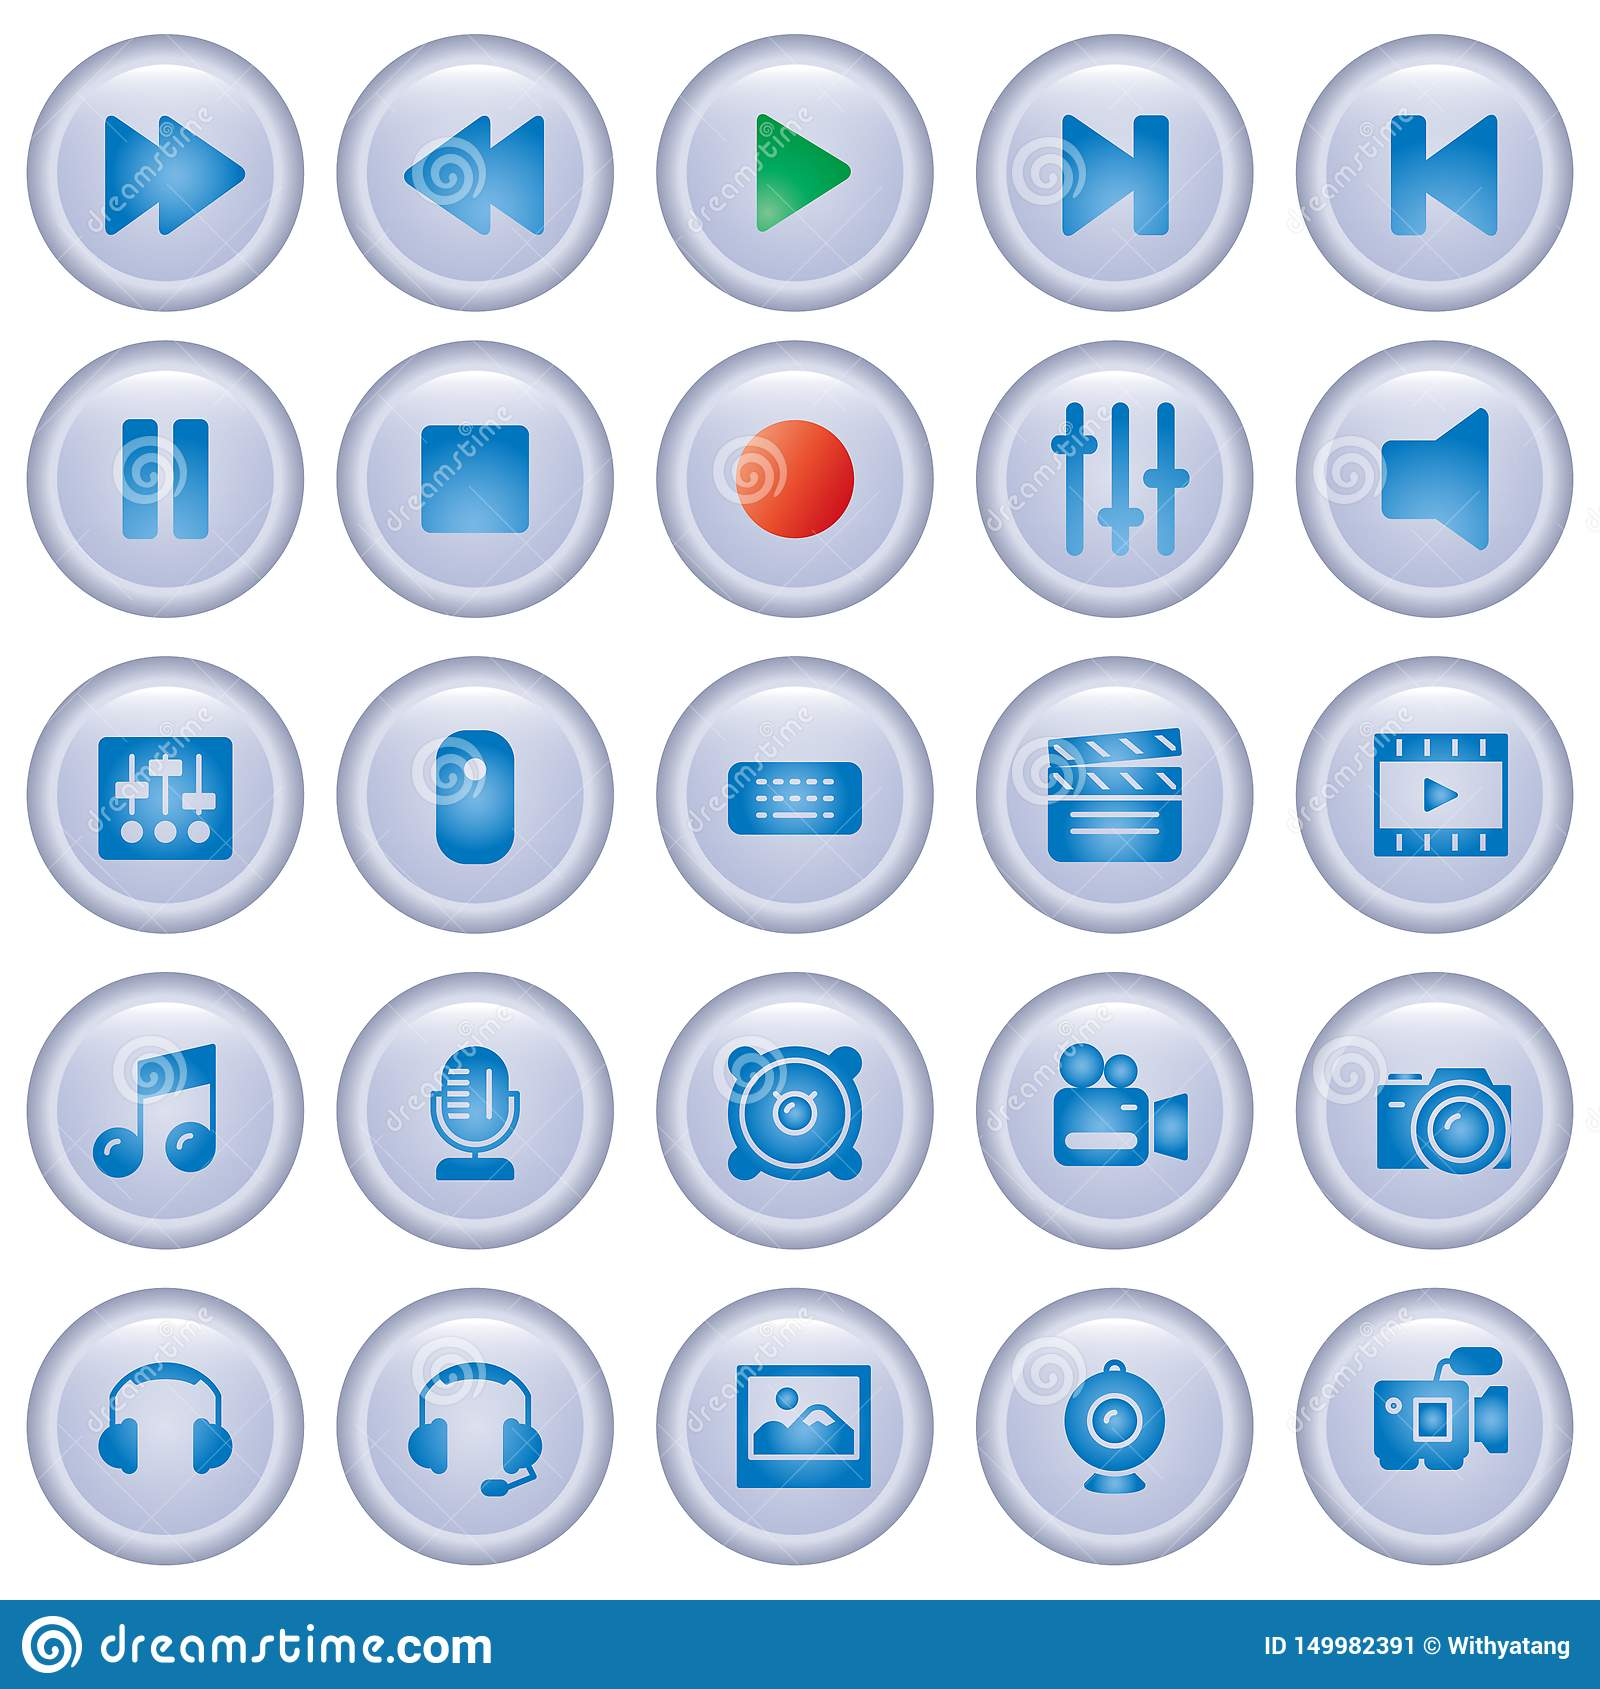 Media player control buttons collection. Glass Buttons Set